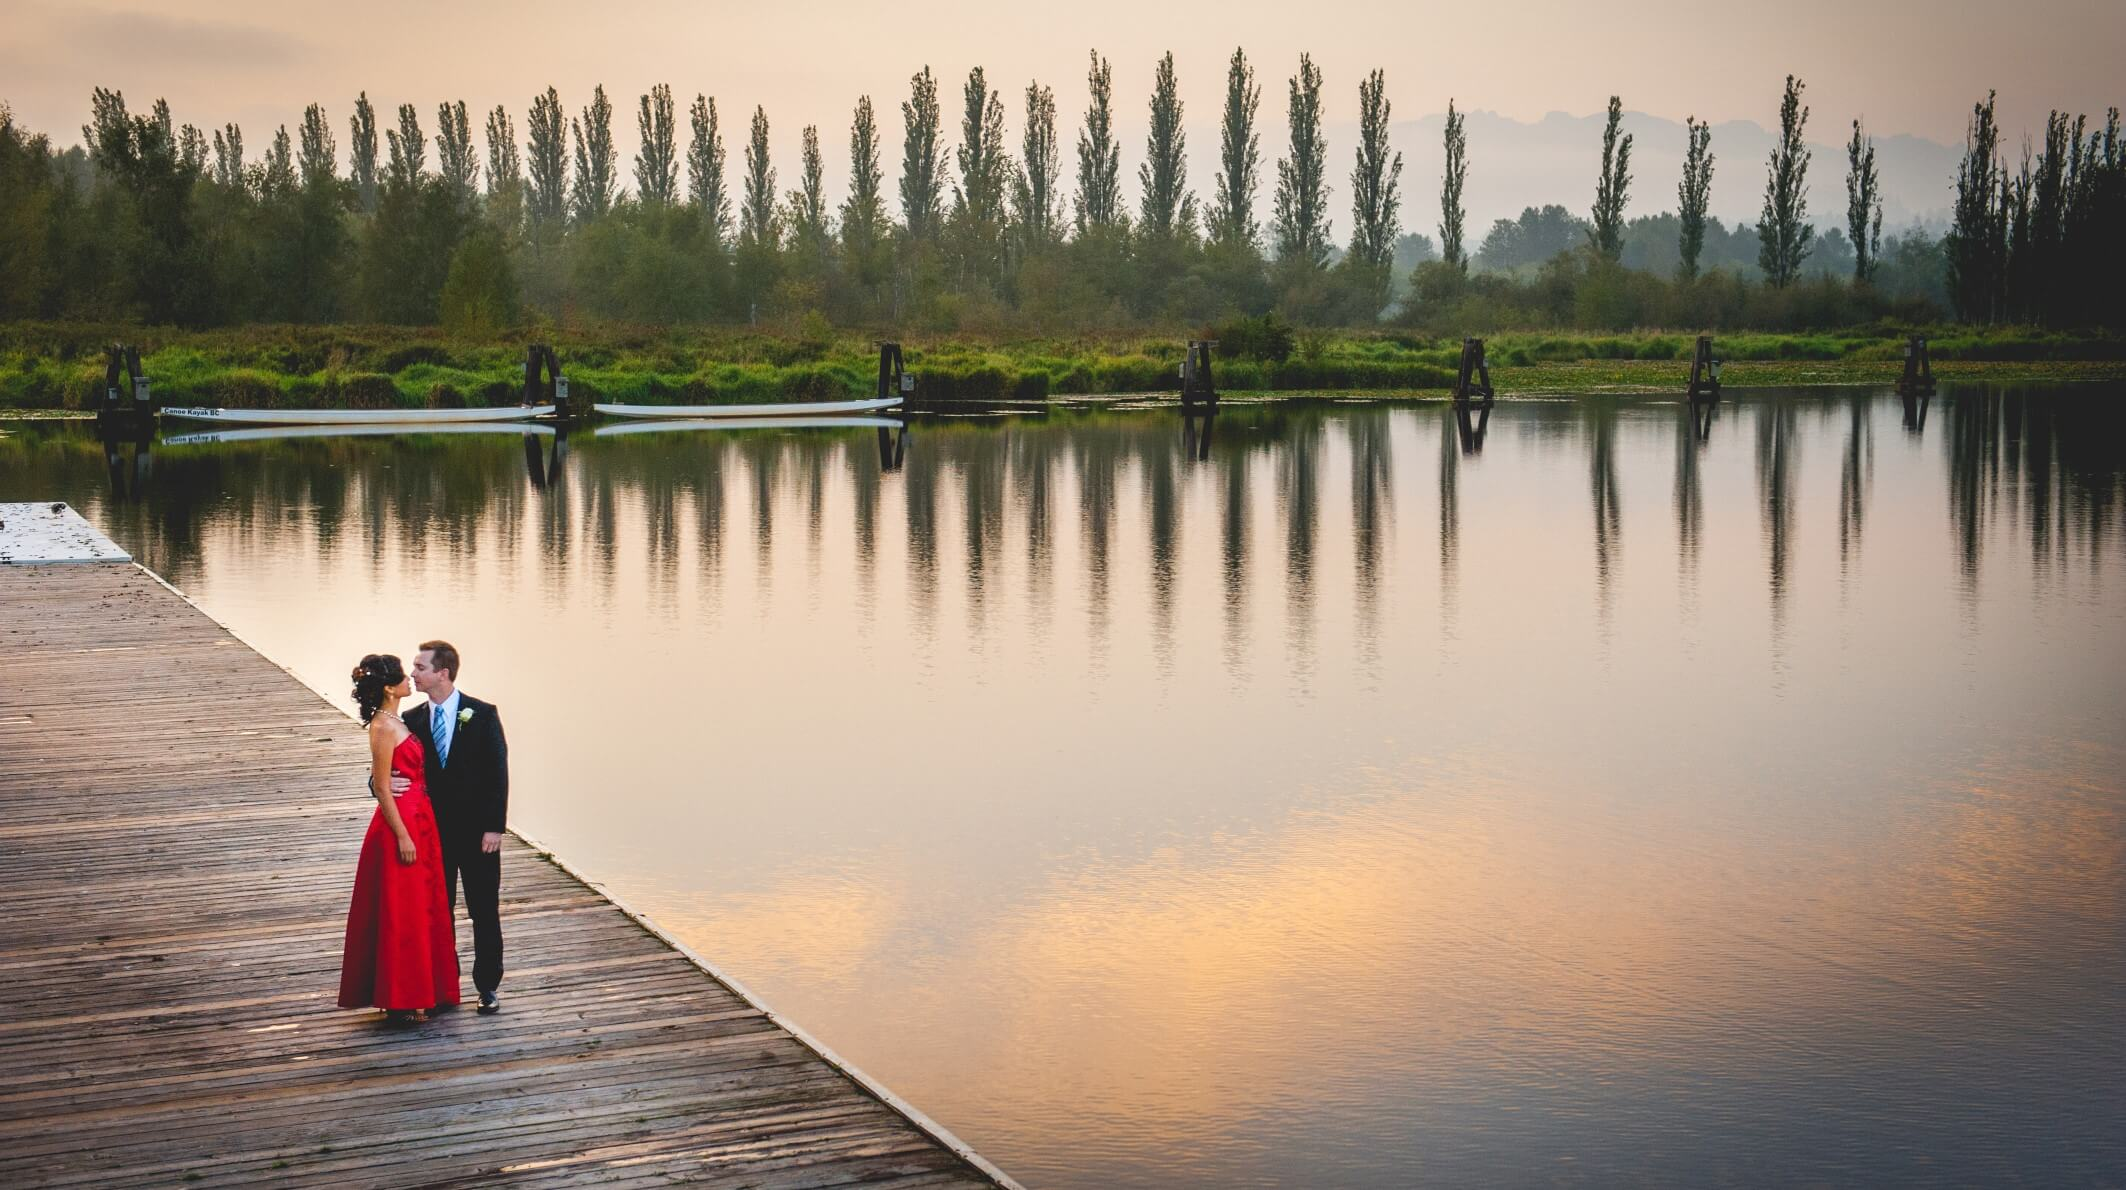 Couple standing on the dock by a lake at dusk.